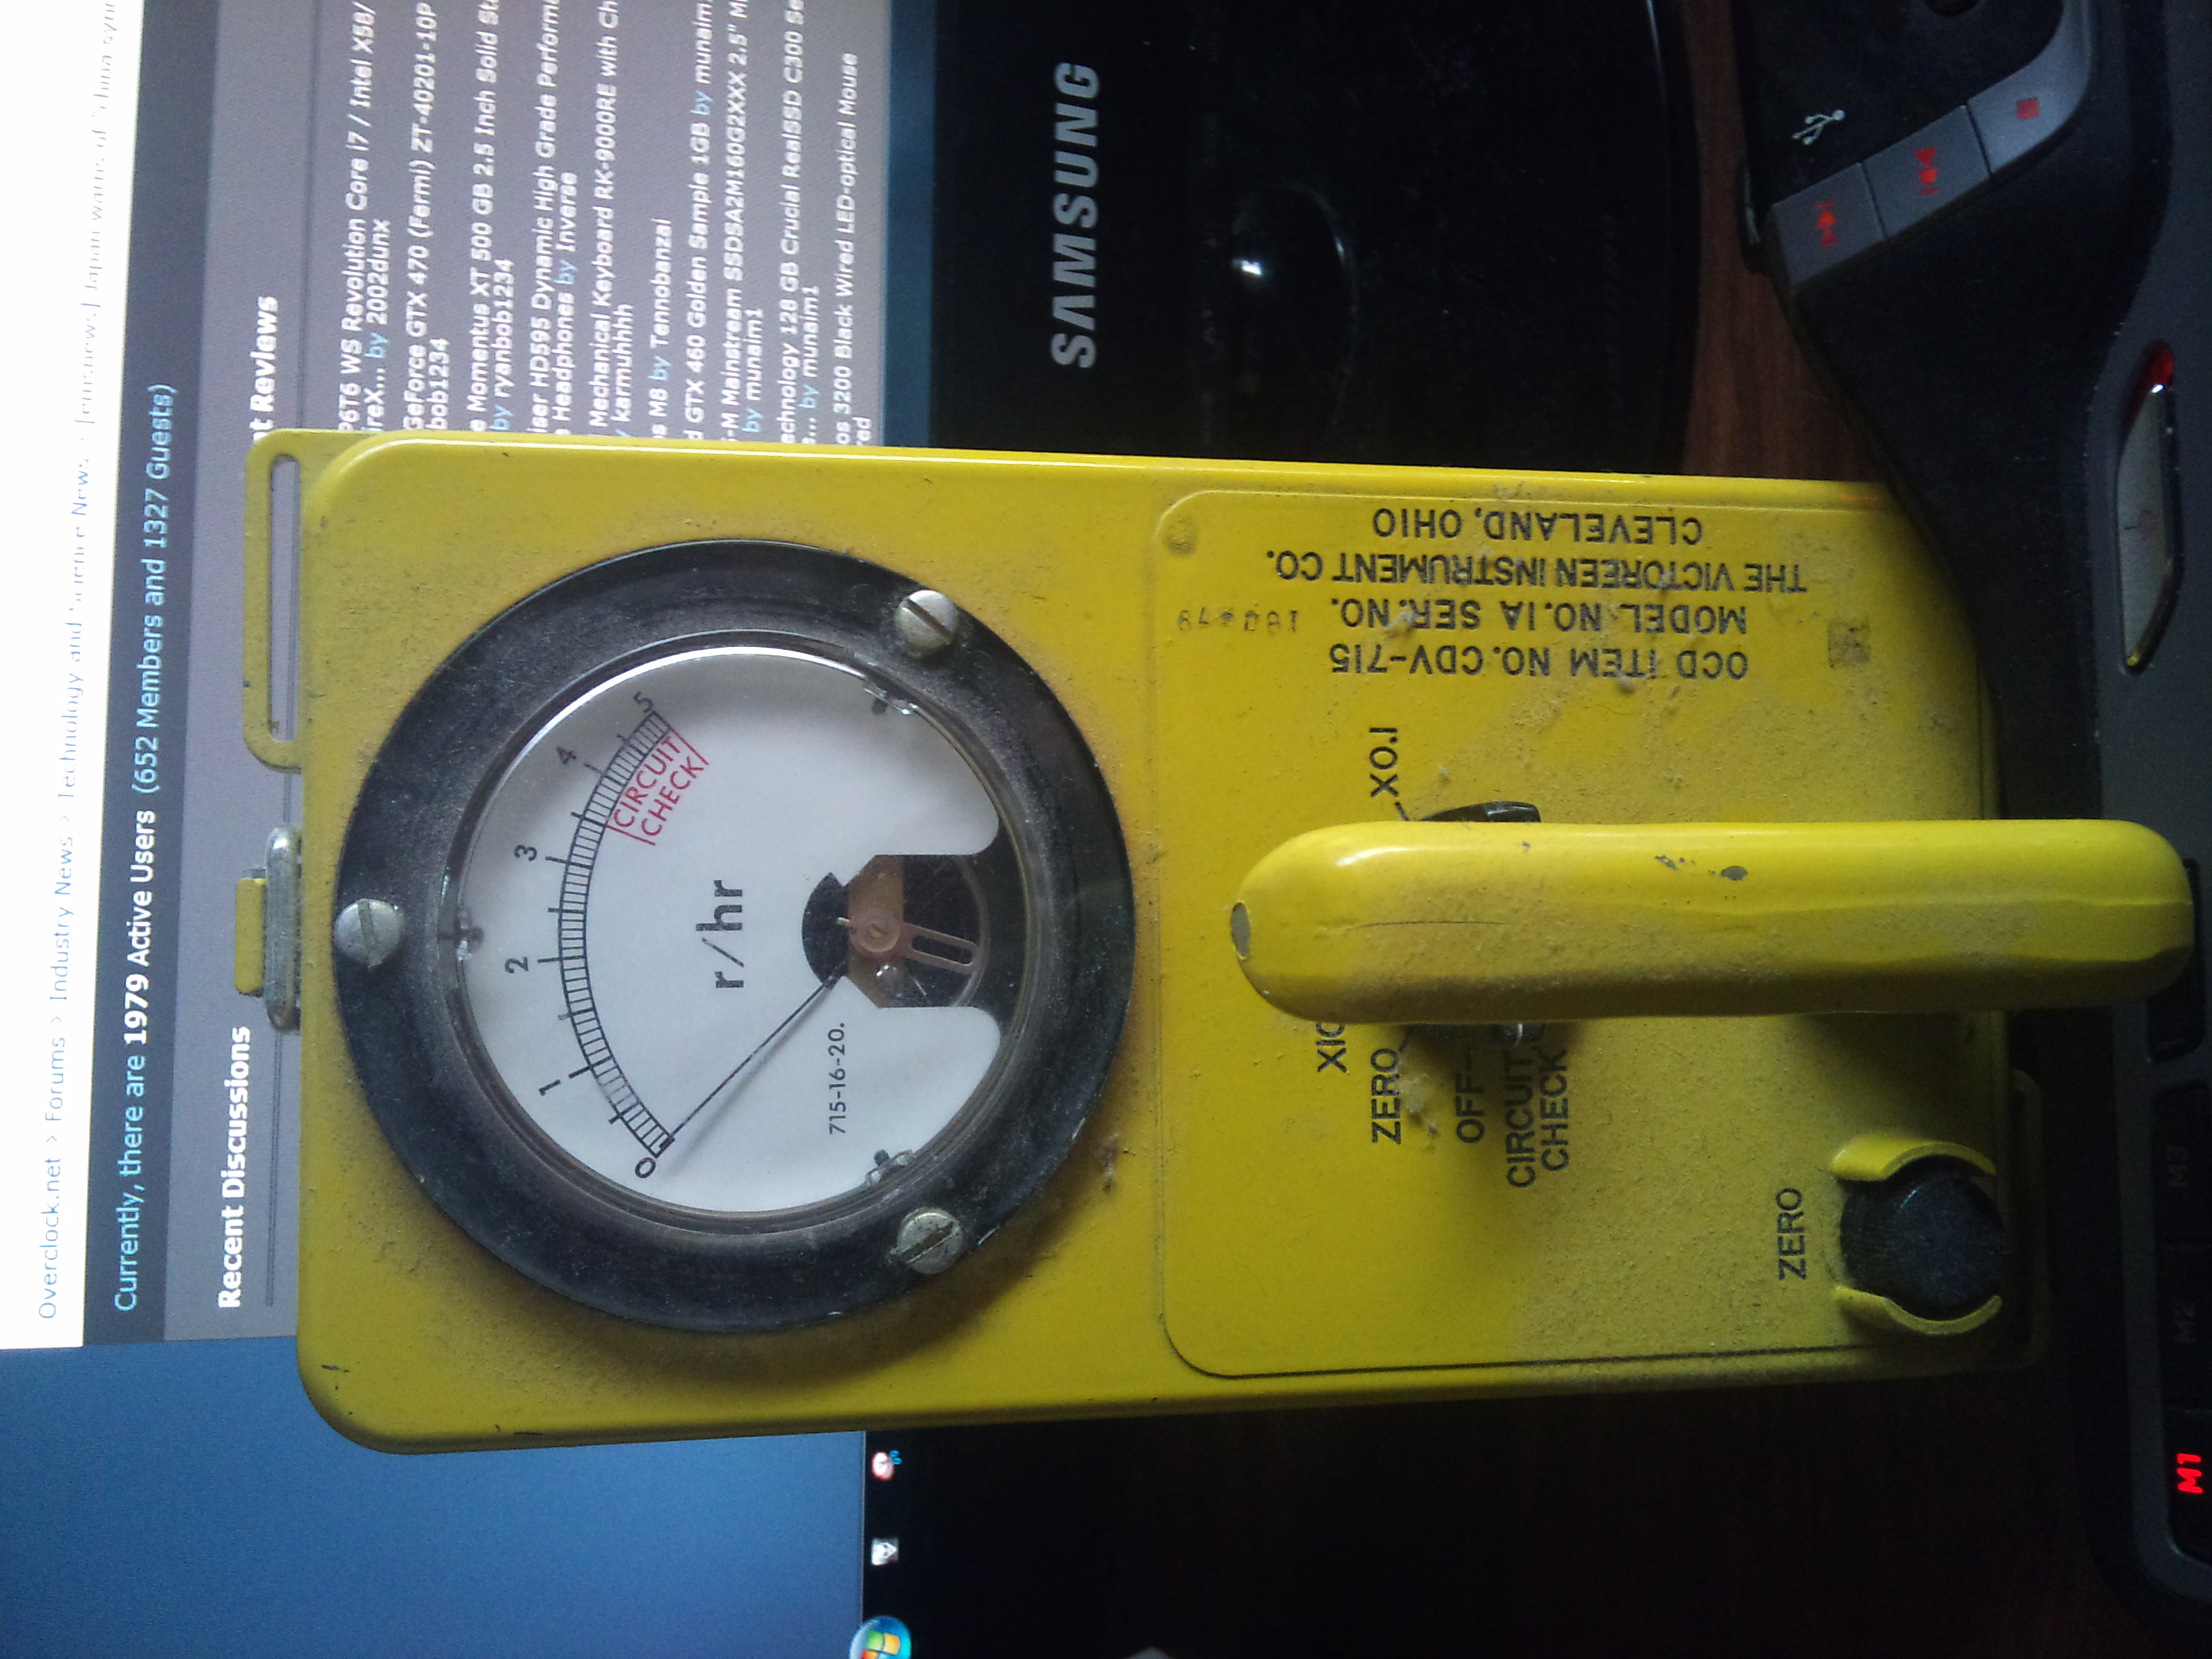 My Geiger counter!